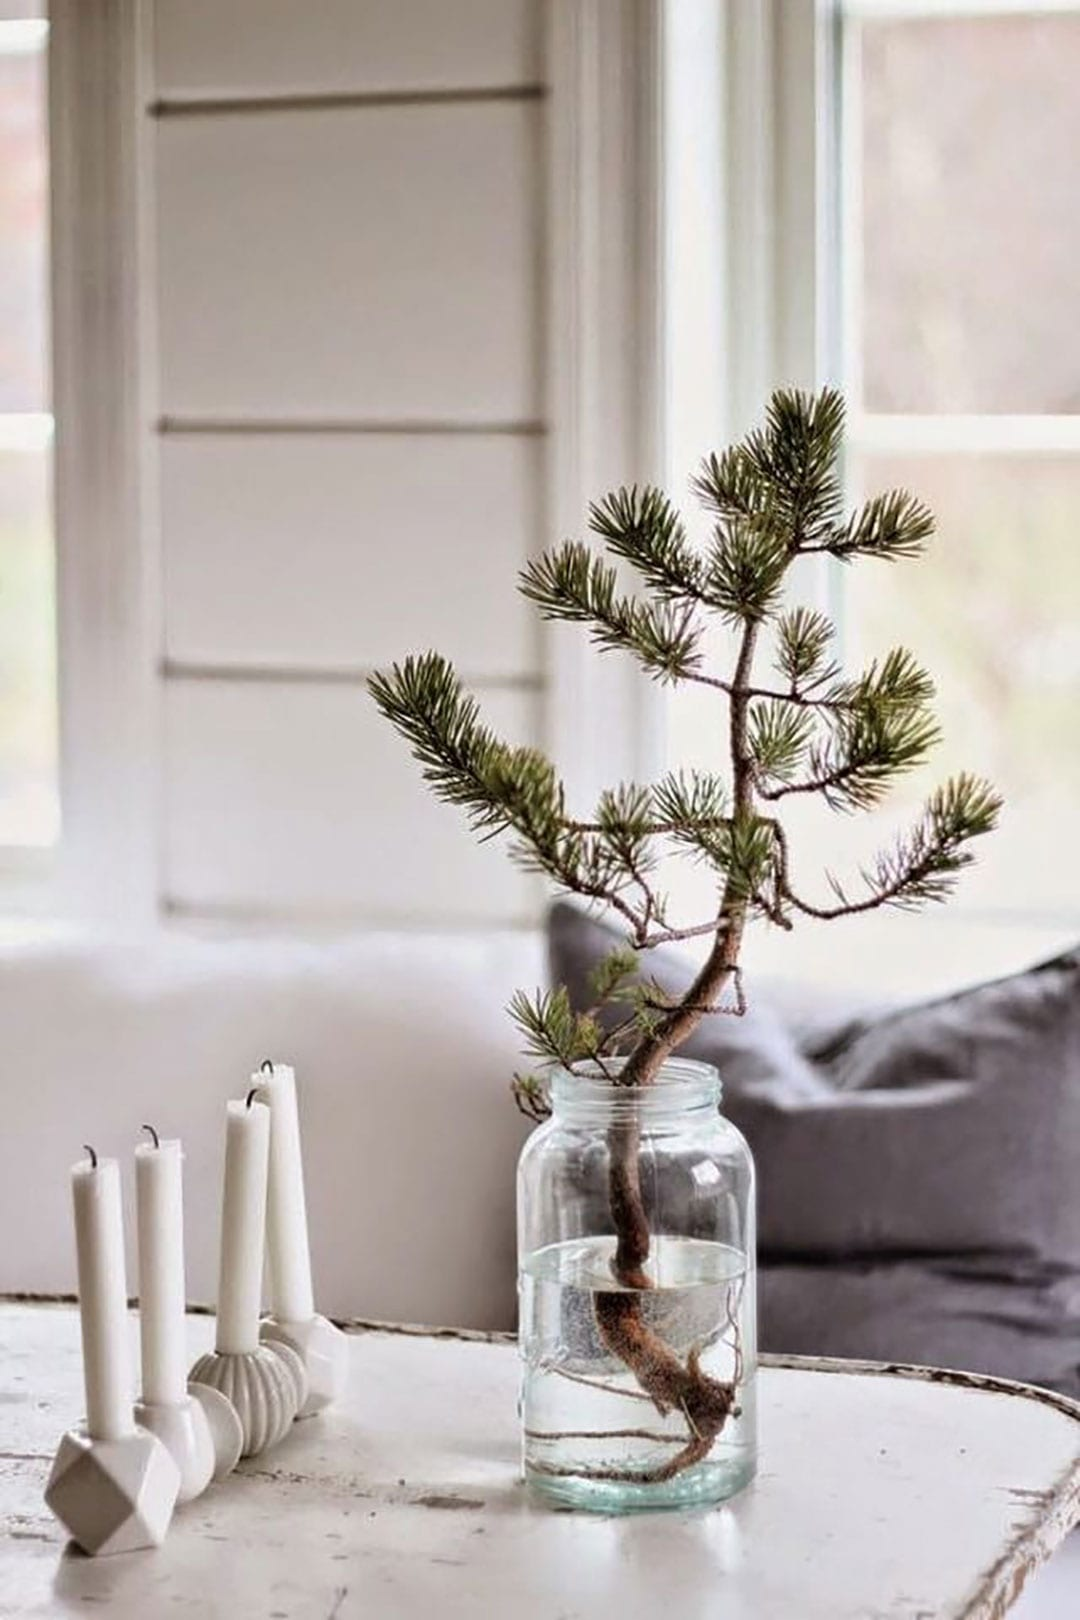 Minimalist Christmas Decorations | @styleminimalism